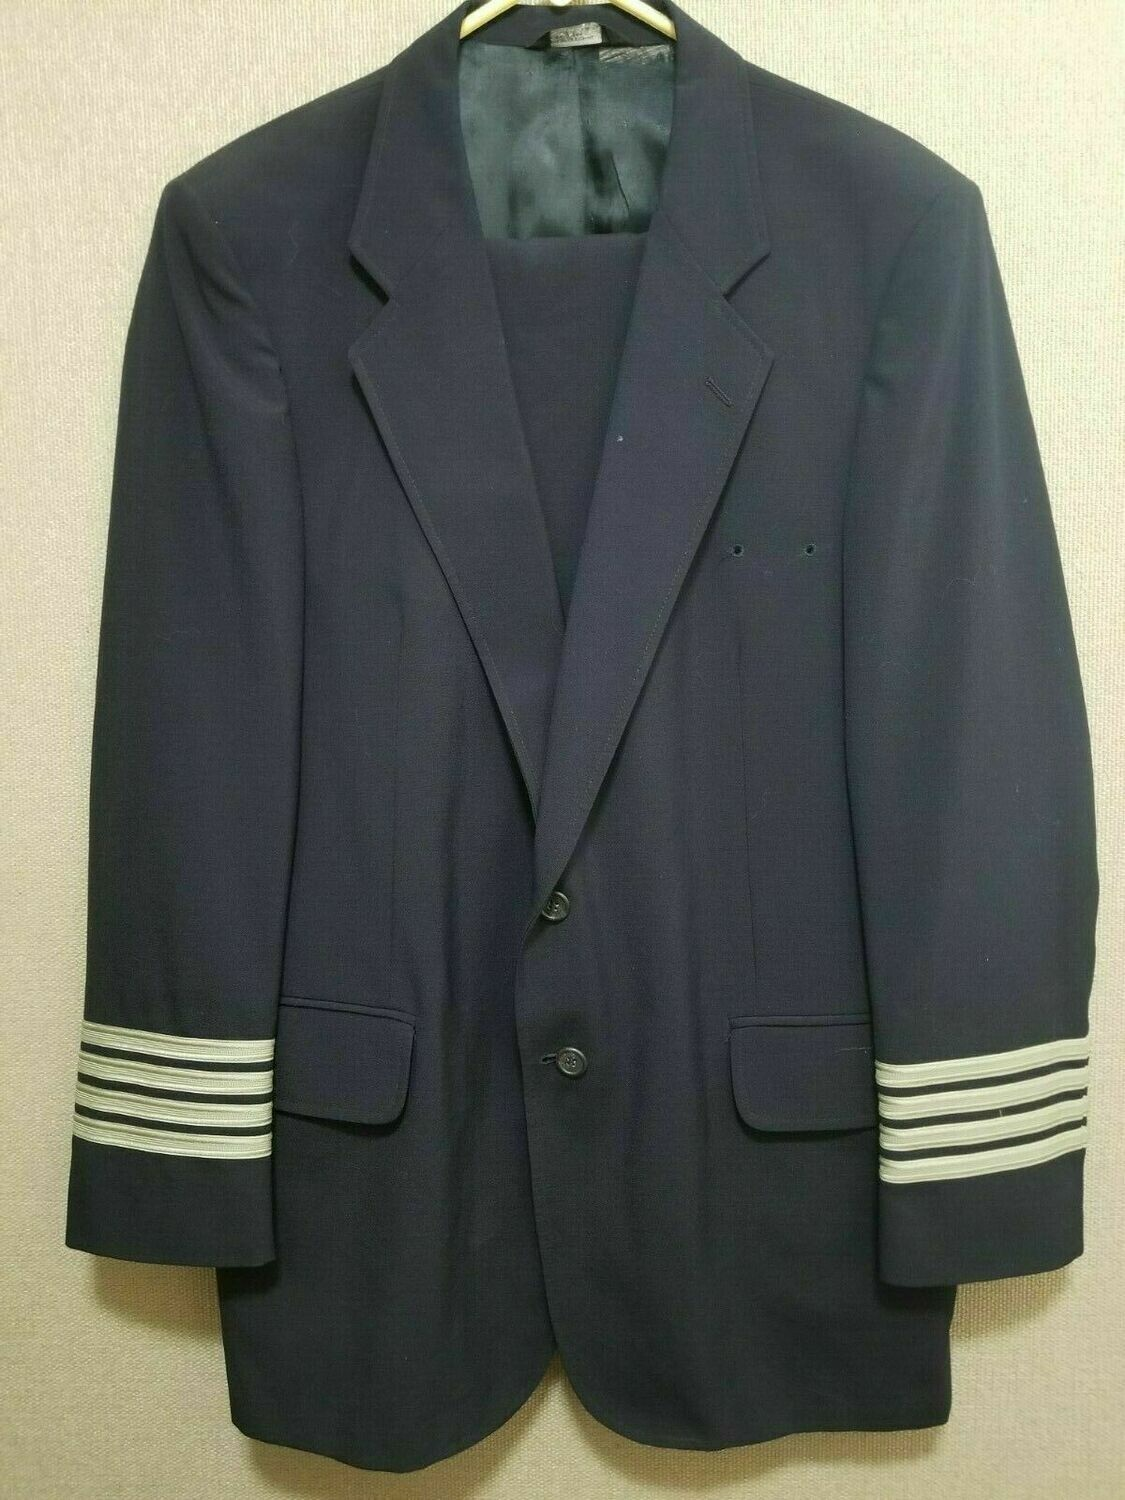 Vintage AMR American Pilot Suit Coat and Pants VF Imagewear 44 Reg 34 Reg